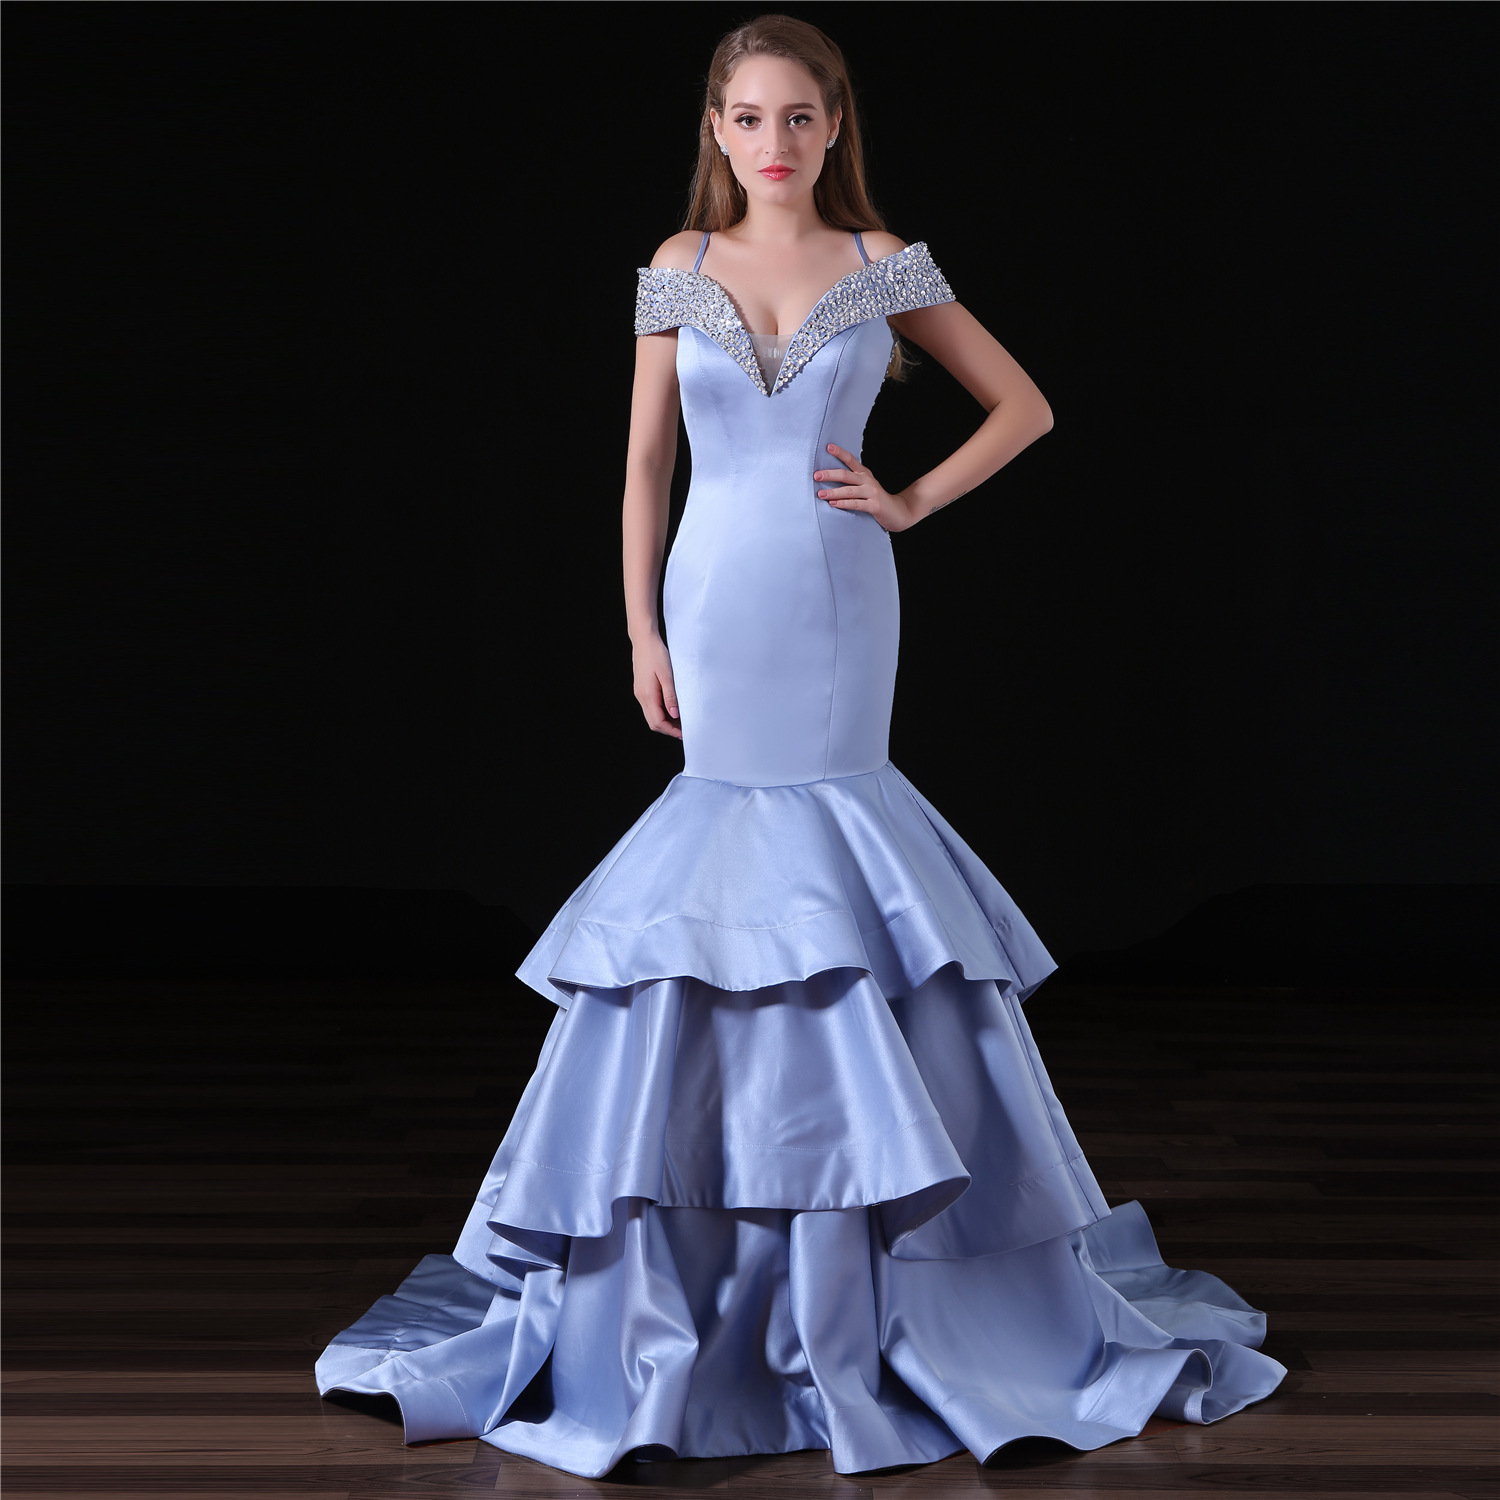 Sexy Satin Evening Dresses Long Beaded Formal Dress Women Elegant Gala Gown Bridal Party Dress V-neck Mermaid Evening Dress 2019